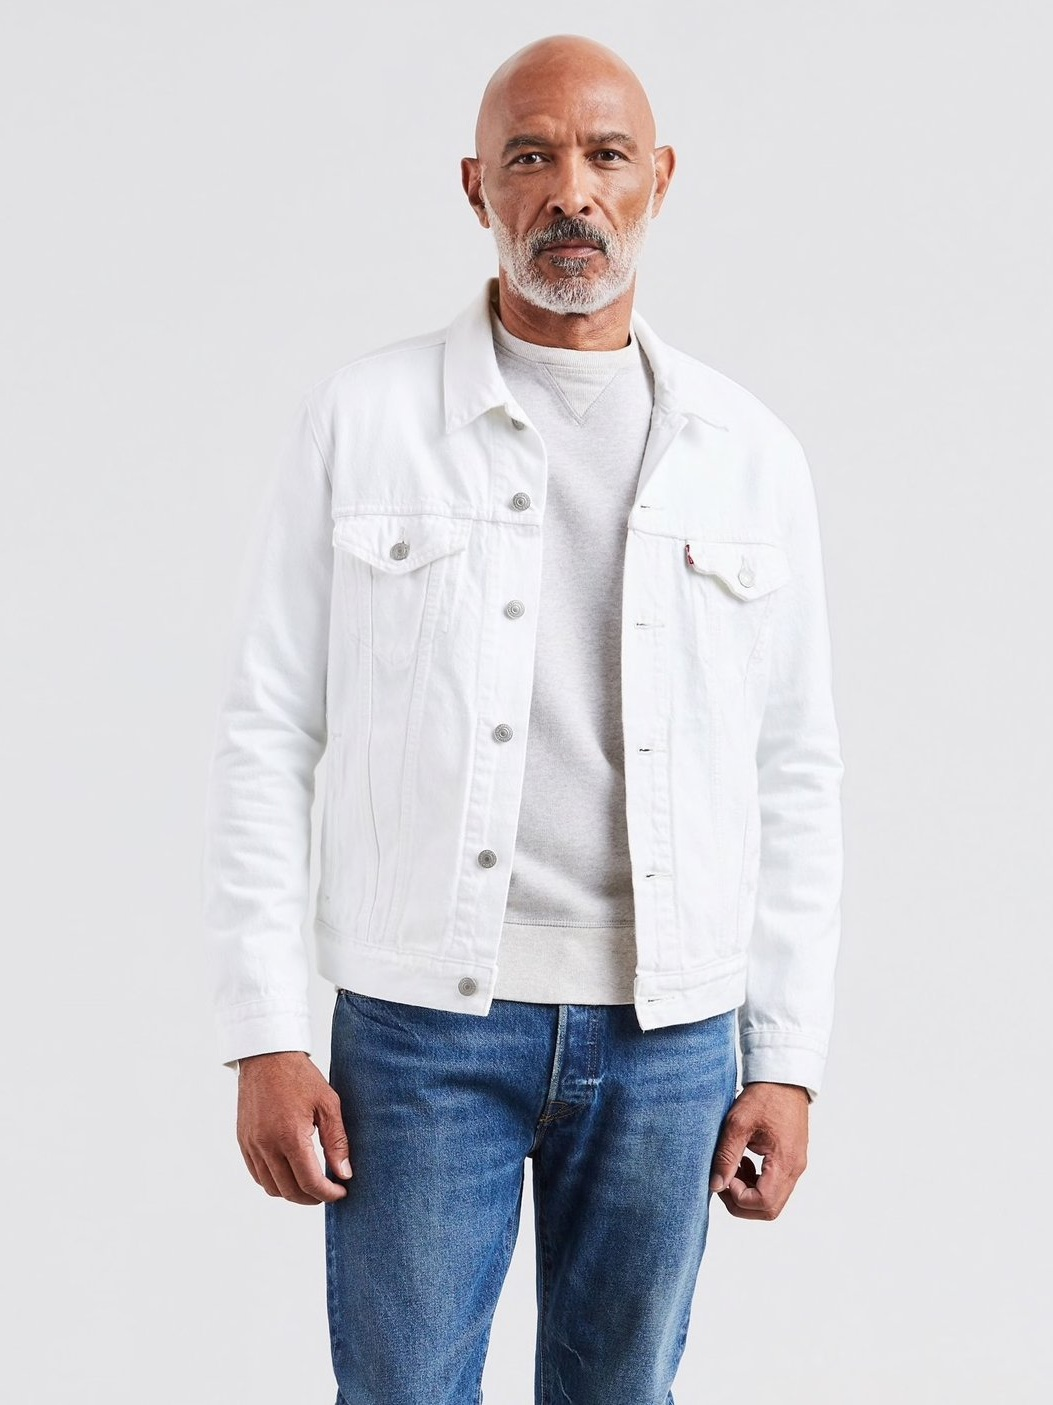 levis white trucker jacket.jpg